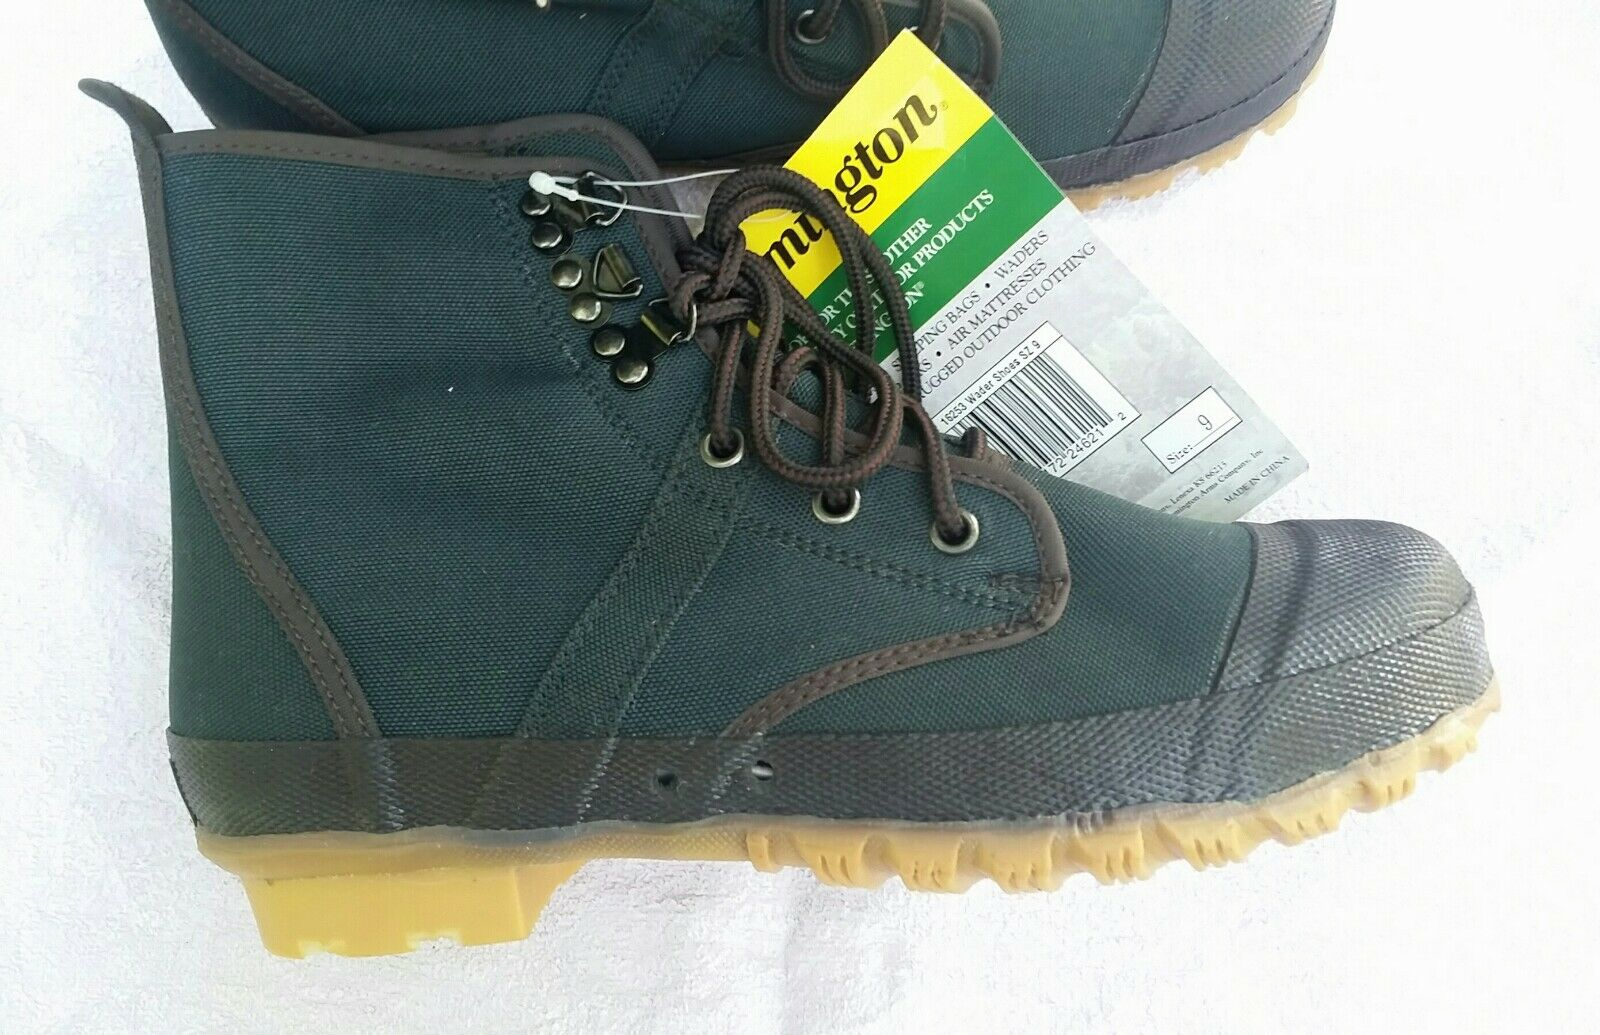 Remington 840 Denier Nylon Oxford Wader shoes with Lug Sole - Size 9, Dark Green